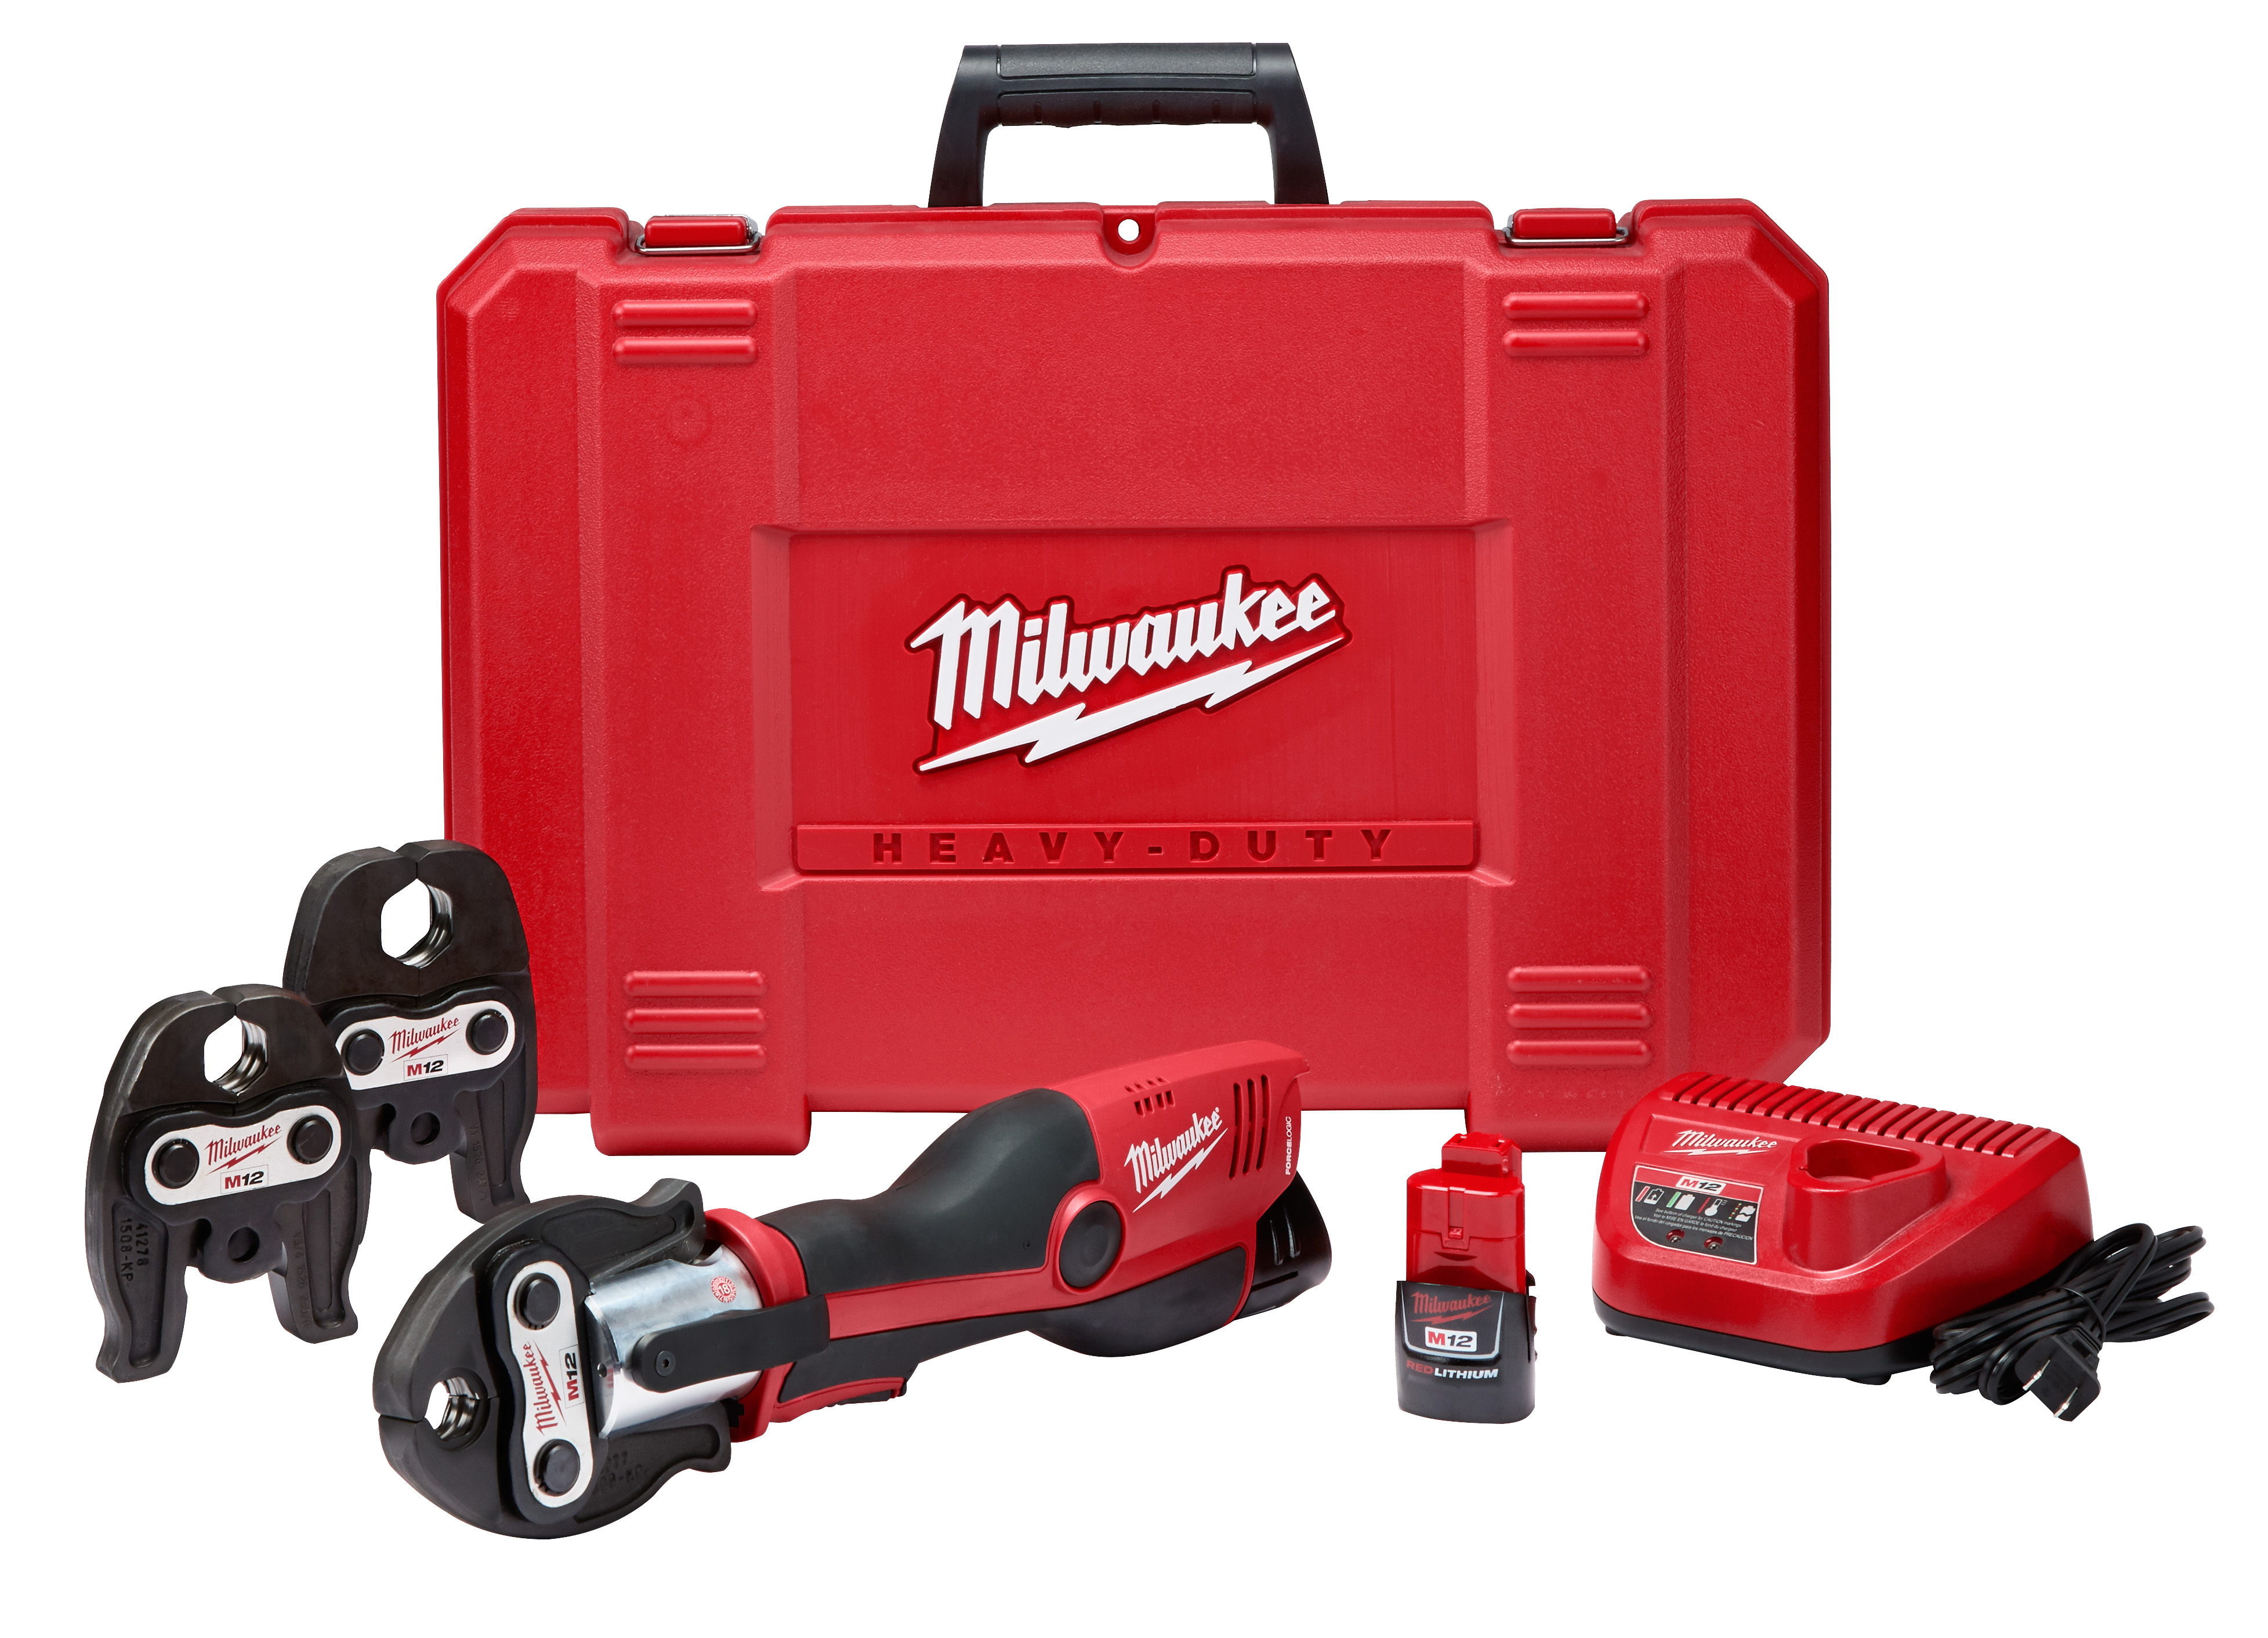 Milwaukee® M18™ 2473-22 FORCE LOGIC™ Press Tool Kit With Jaw, 1/2 to 1-1/4 in Copper Capacity, 5400 lb, 12 VDC, M12™ REDLITHIUM™ Battery